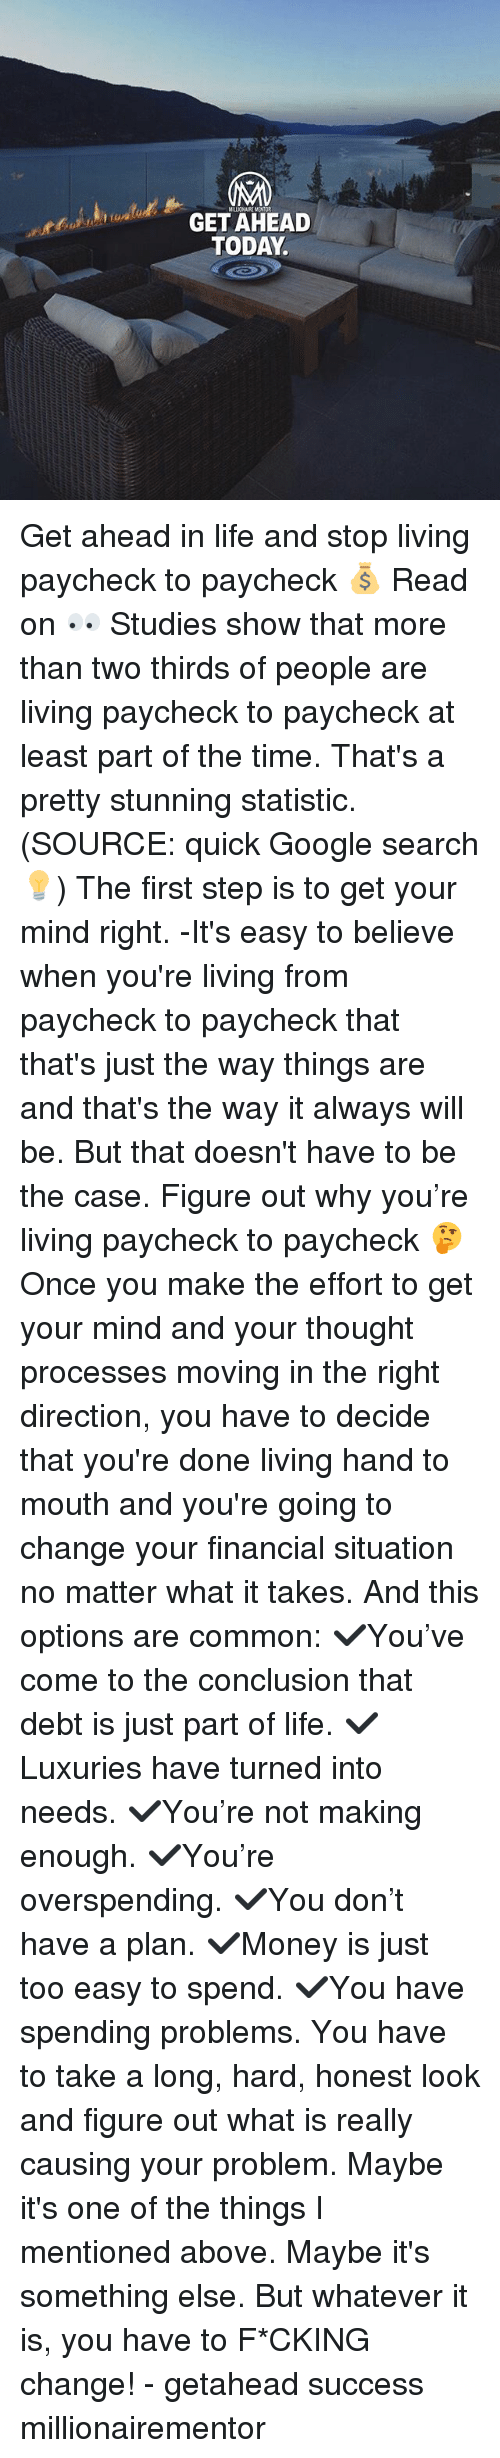 Google, Life, and Memes: MILLIOHAIRE MENT  GET AHEAD  TODAY. Get ahead in life and stop living paycheck to paycheck 💰 Read on 👀 Studies show that more than two thirds of people are living paycheck to paycheck at least part of the time. That's a pretty stunning statistic. (SOURCE: quick Google search💡) The first step is to get your mind right. -It's easy to believe when you're living from paycheck to paycheck that that's just the way things are and that's the way it always will be. But that doesn't have to be the case. Figure out why you're living paycheck to paycheck 🤔 Once you make the effort to get your mind and your thought processes moving in the right direction, you have to decide that you're done living hand to mouth and you're going to change your financial situation no matter what it takes. And this options are common: ✔️You've come to the conclusion that debt is just part of life. ✔️Luxuries have turned into needs. ✔️You're not making enough. ✔️You're overspending. ✔️You don't have a plan. ✔️Money is just too easy to spend. ✔️You have spending problems. You have to take a long, hard, honest look and figure out what is really causing your problem. Maybe it's one of the things I mentioned above. Maybe it's something else. But whatever it is, you have to F*CKING change! - getahead success millionairementor